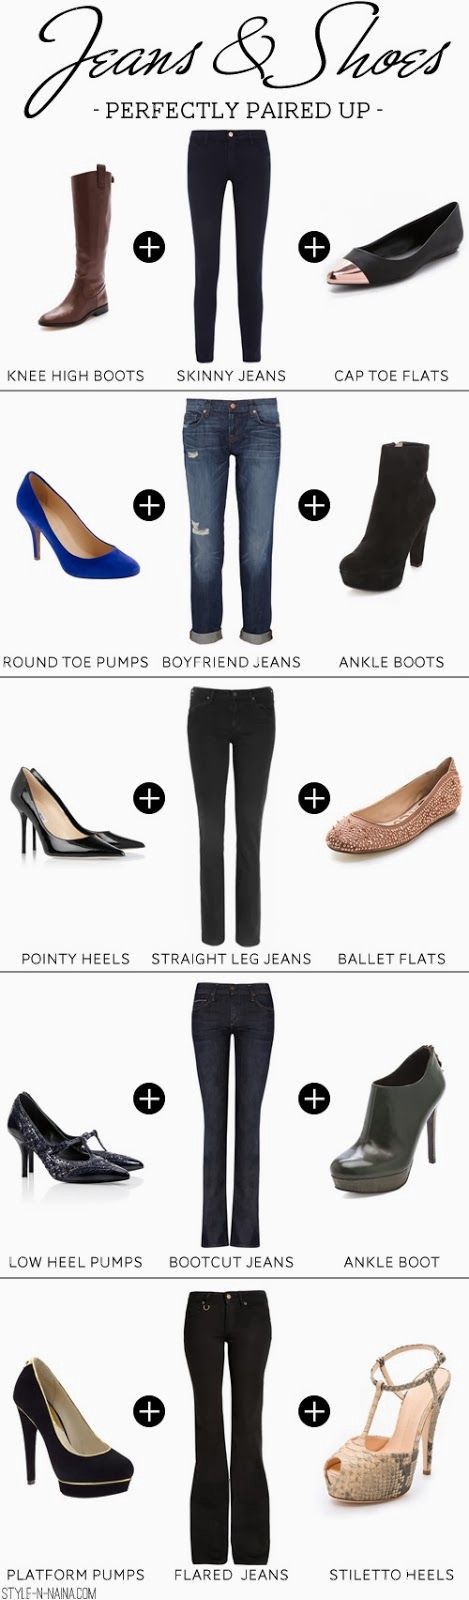 Suitable Shoes for Jeans for Ladies: